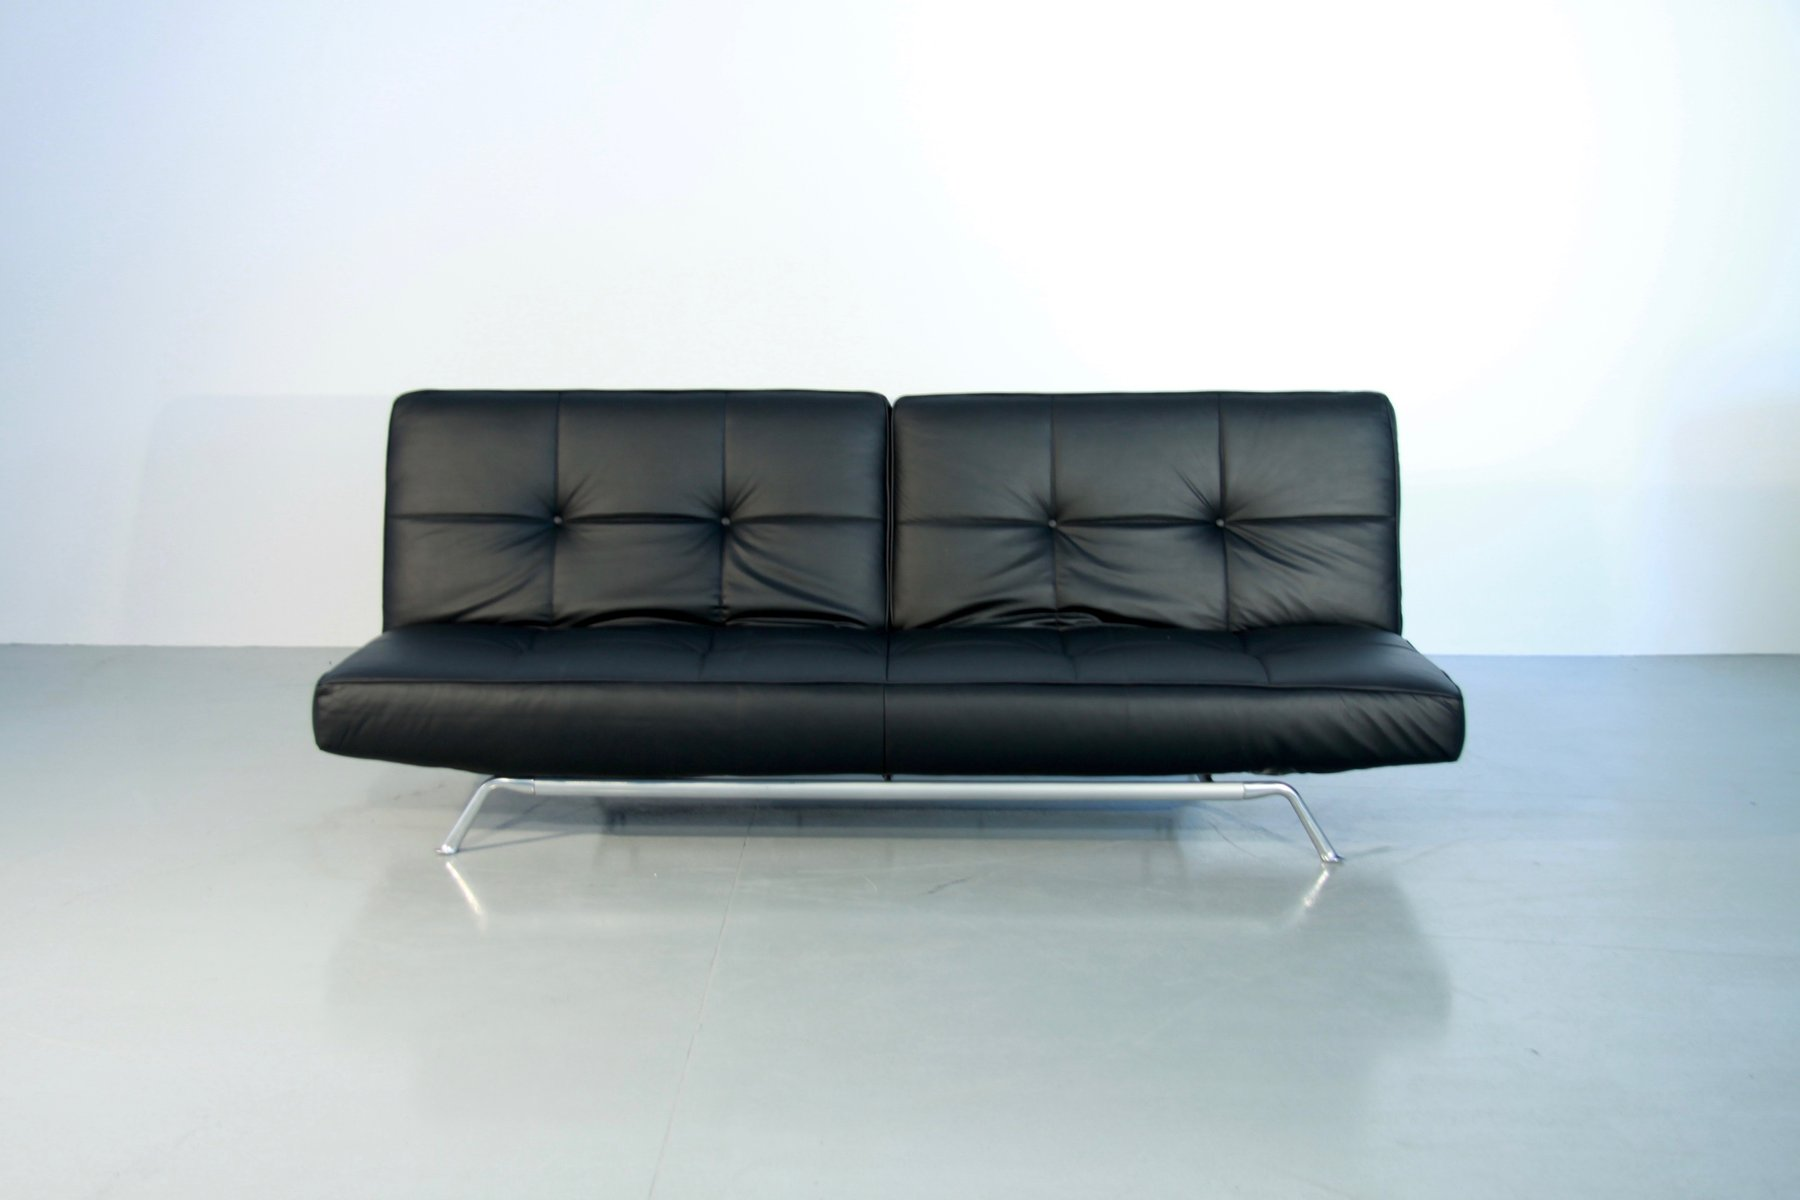 Console Ligne Roset Vintage Smala Black Leather Adjustable Sofabed By Pascal Mourgue For Ligne Roset